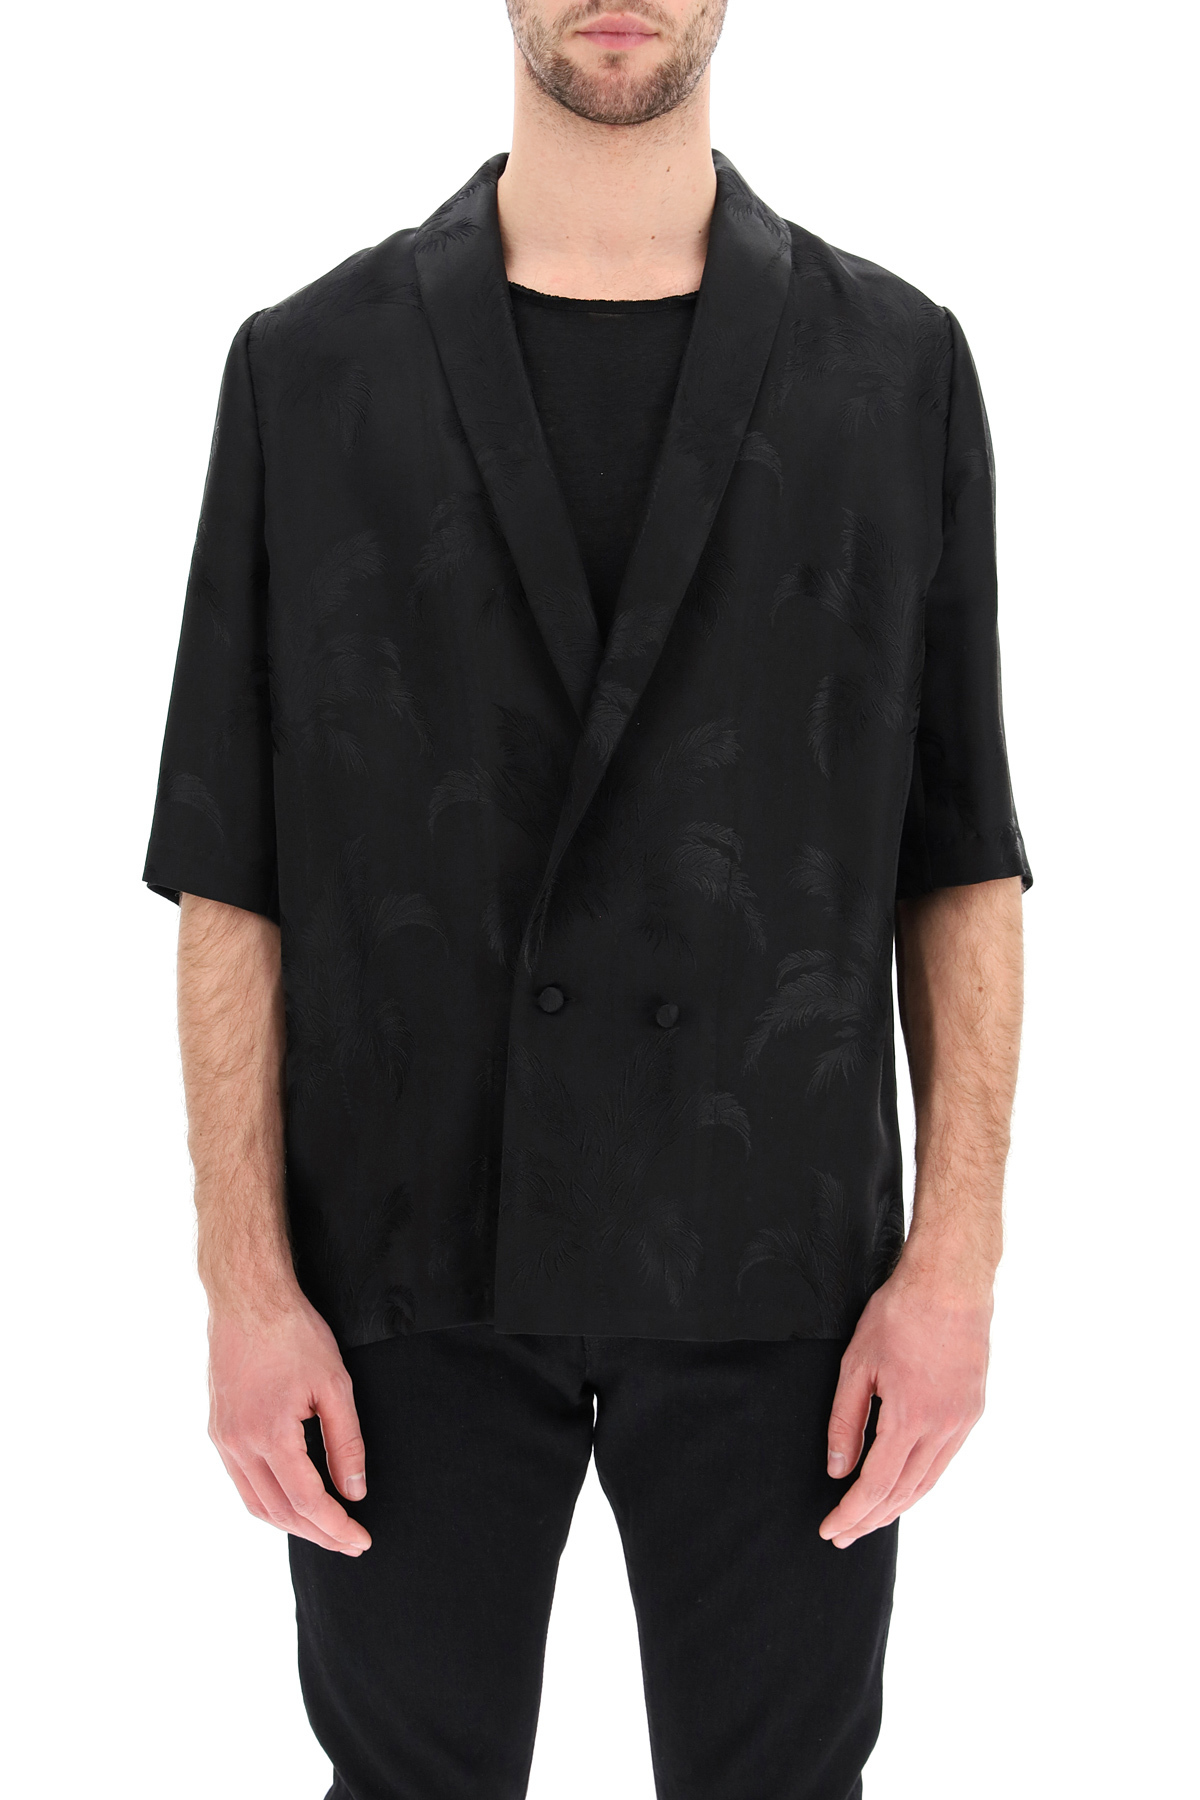 Saint laurent camicia-giacca stampa tropical